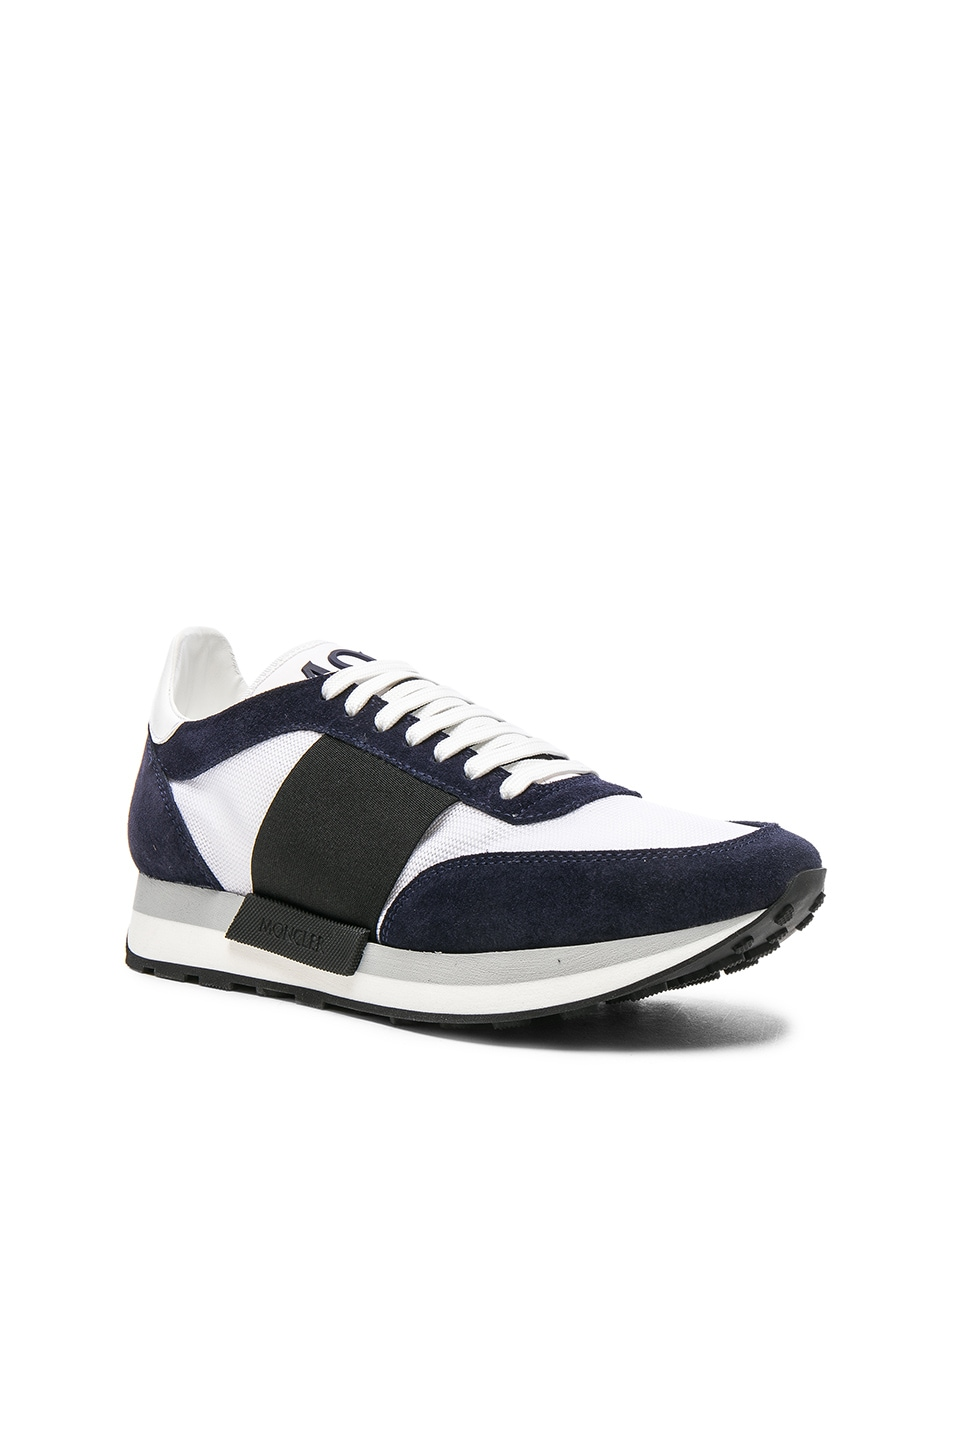 8a0d174fe Moncler Horace Sneakers in Navy   White